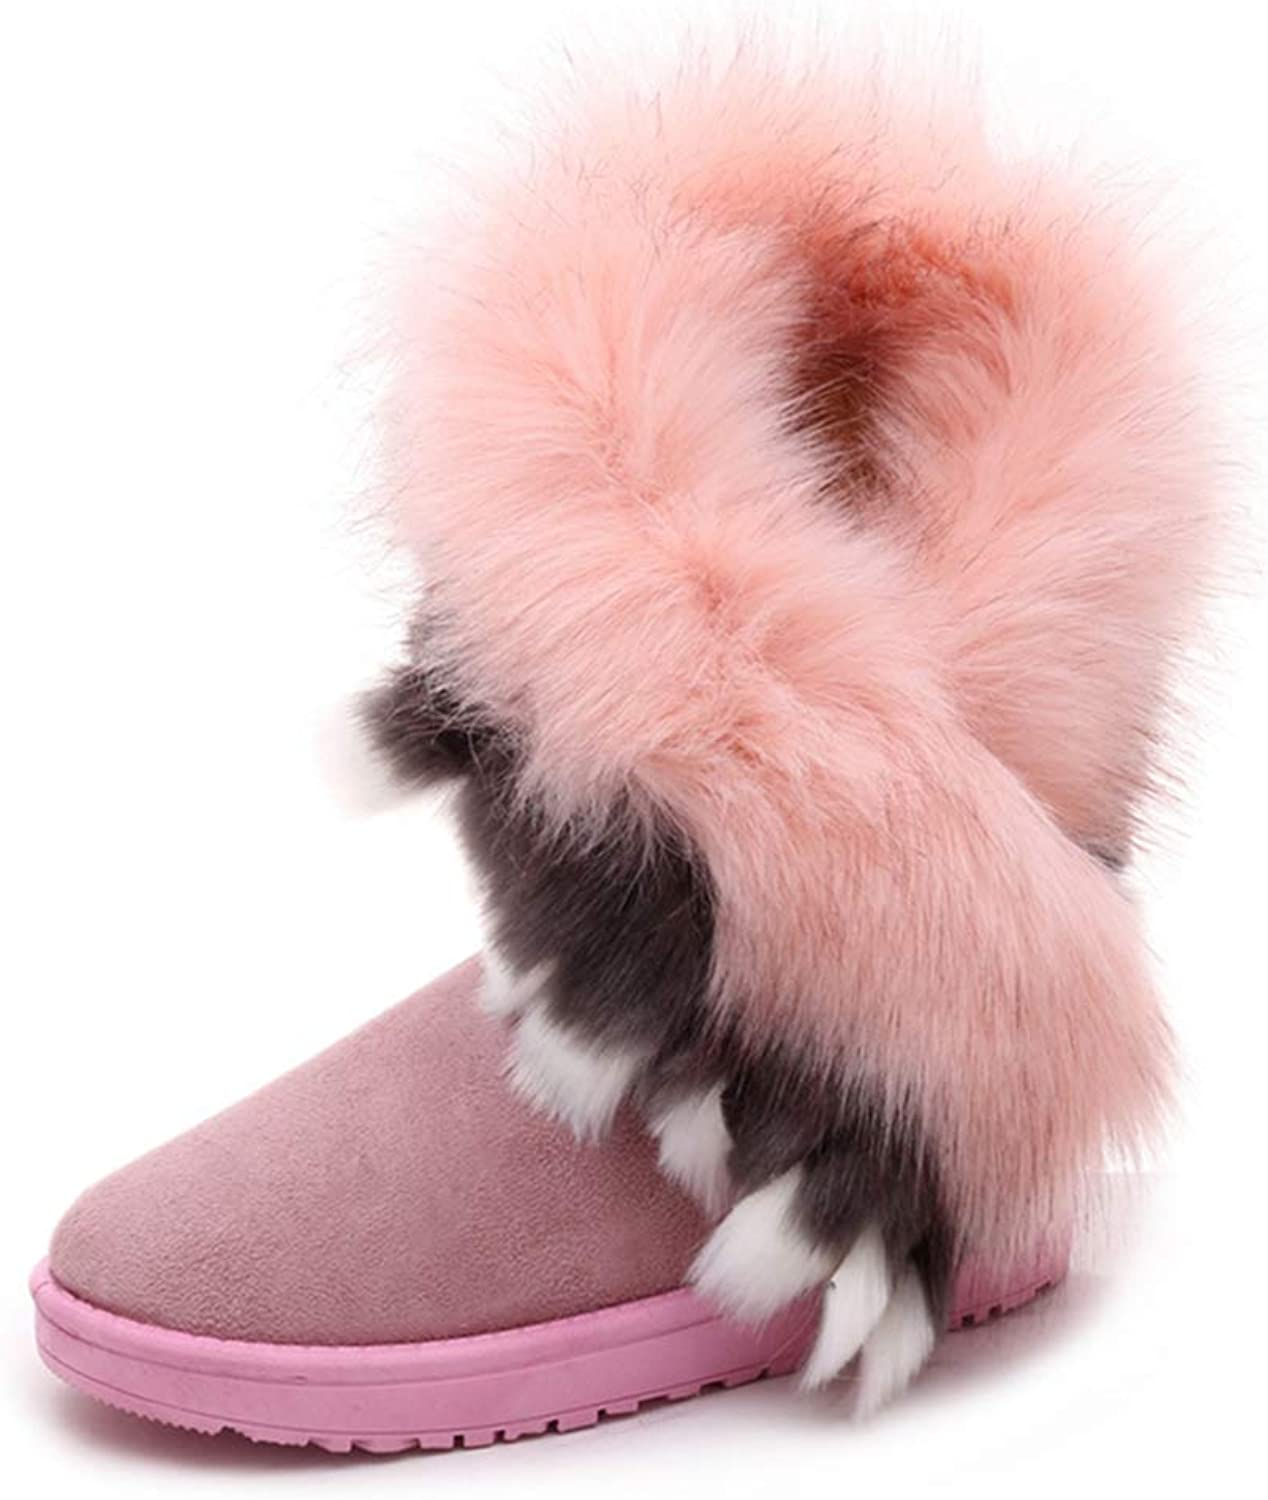 BMTH Women's Fur Suede Waterproof Snow Ankle Boots Fashion Winter Round Toe Slip On Flat Warm Short Booties